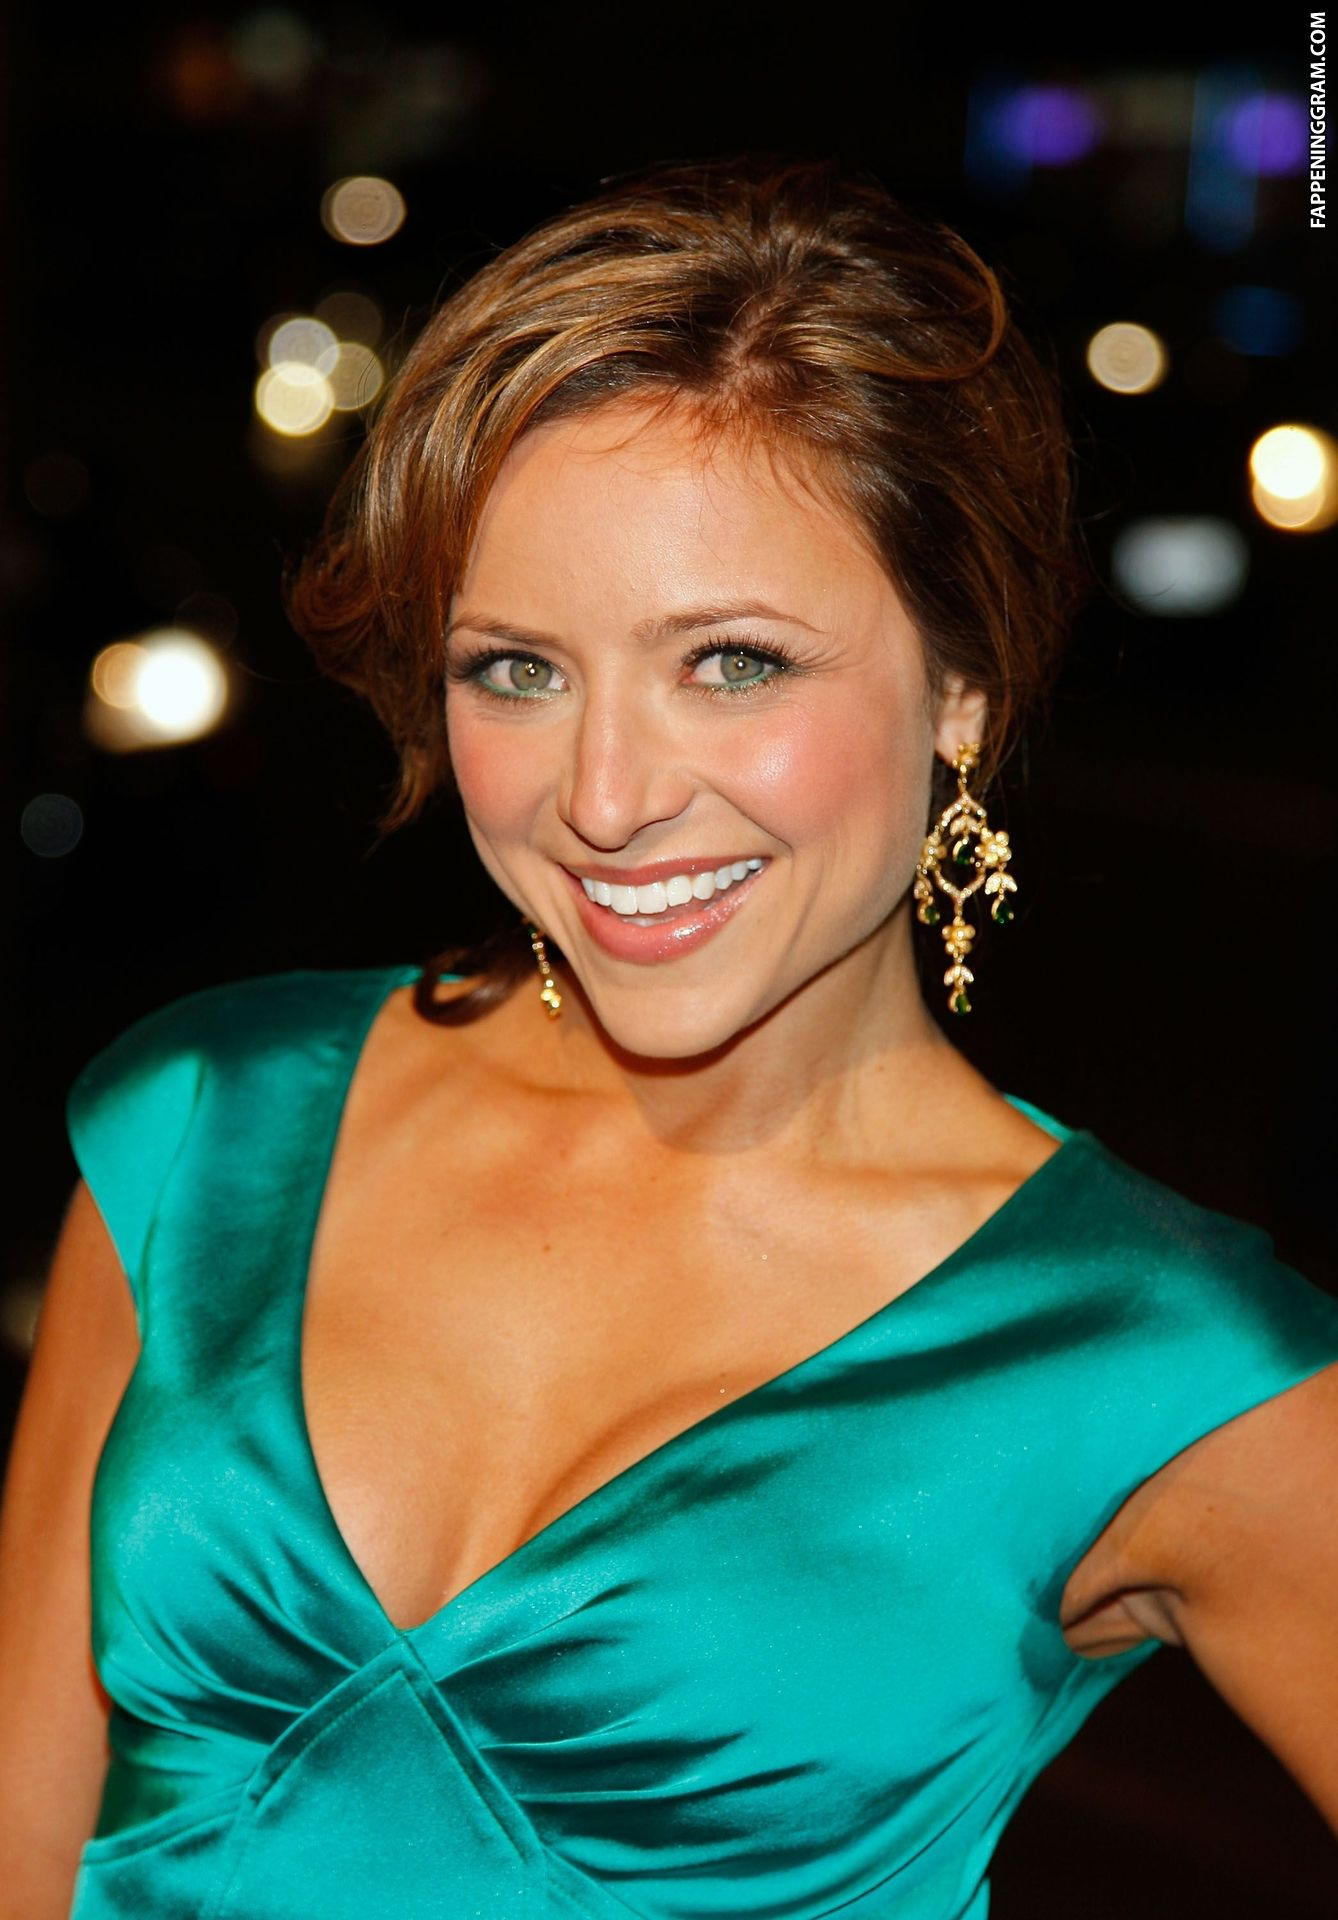 Christine Lakin Nude The Fappening - Page 2 - FappeningGram